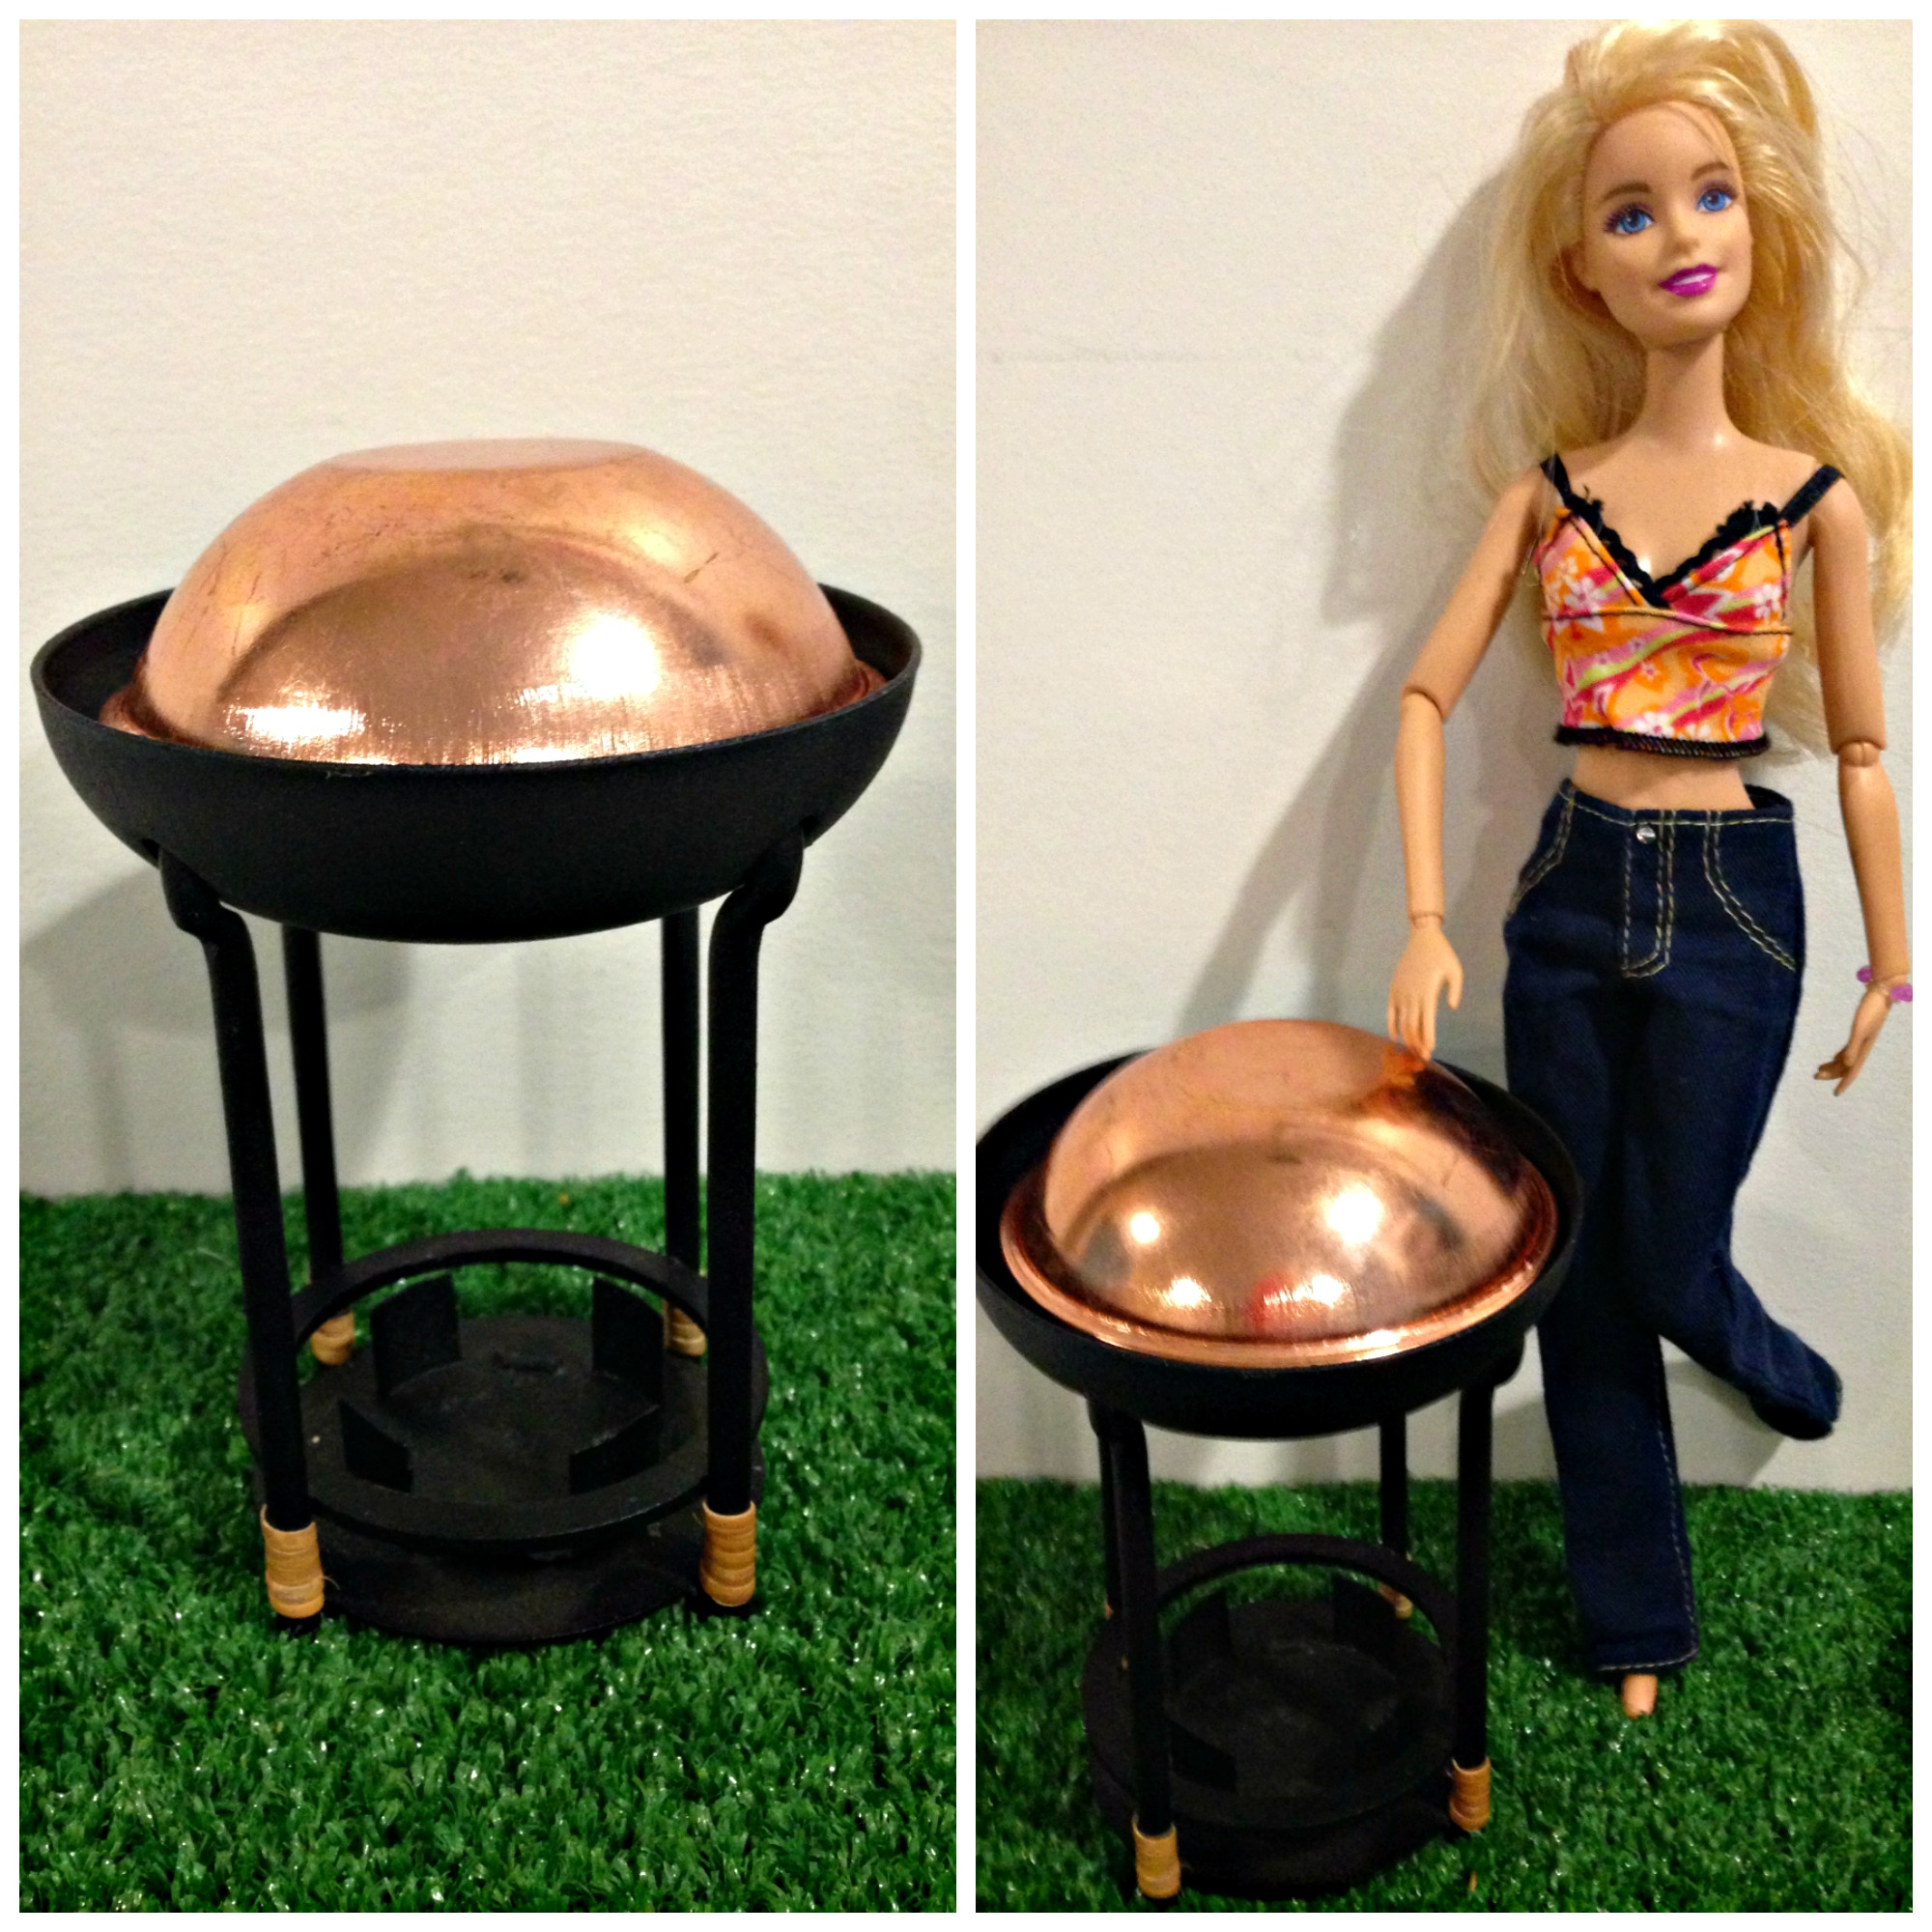 10 Amazing Barbie Doll Projects Made With Thrift Store Finds #barbiedoll #upcycle #DIY #furniture #accessories #trashtotreasre #thriftstorefind  Starrcreative.ca